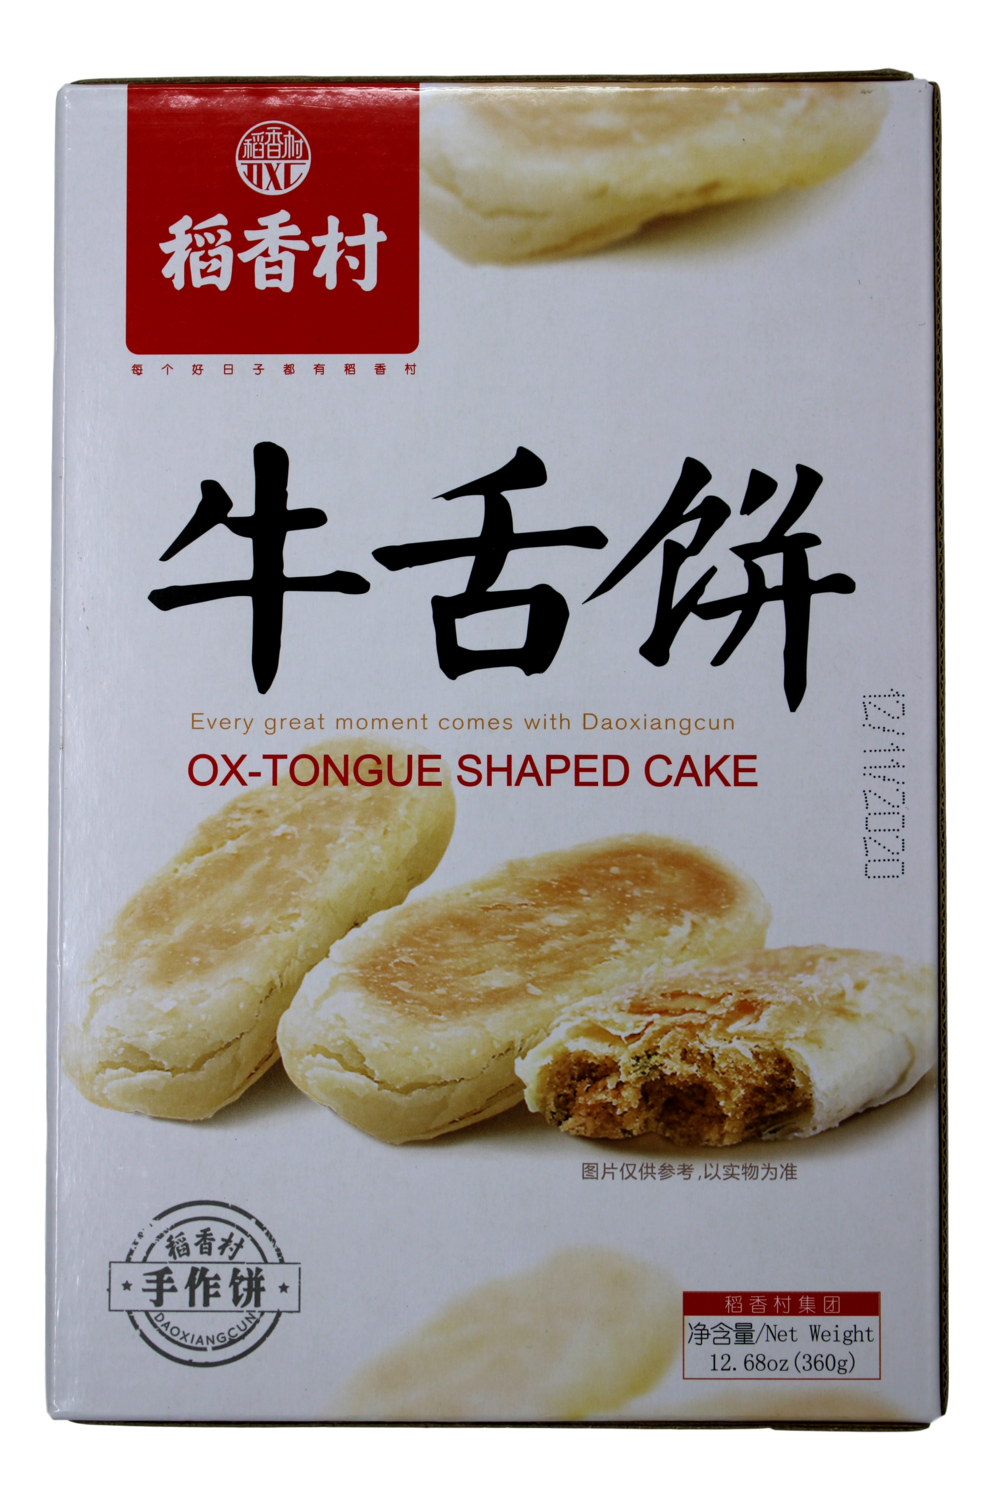 DAOXIANGCUN OX-TONGUE SHAPED CAKE 稻香村 牛舌饼(12.68OZ)